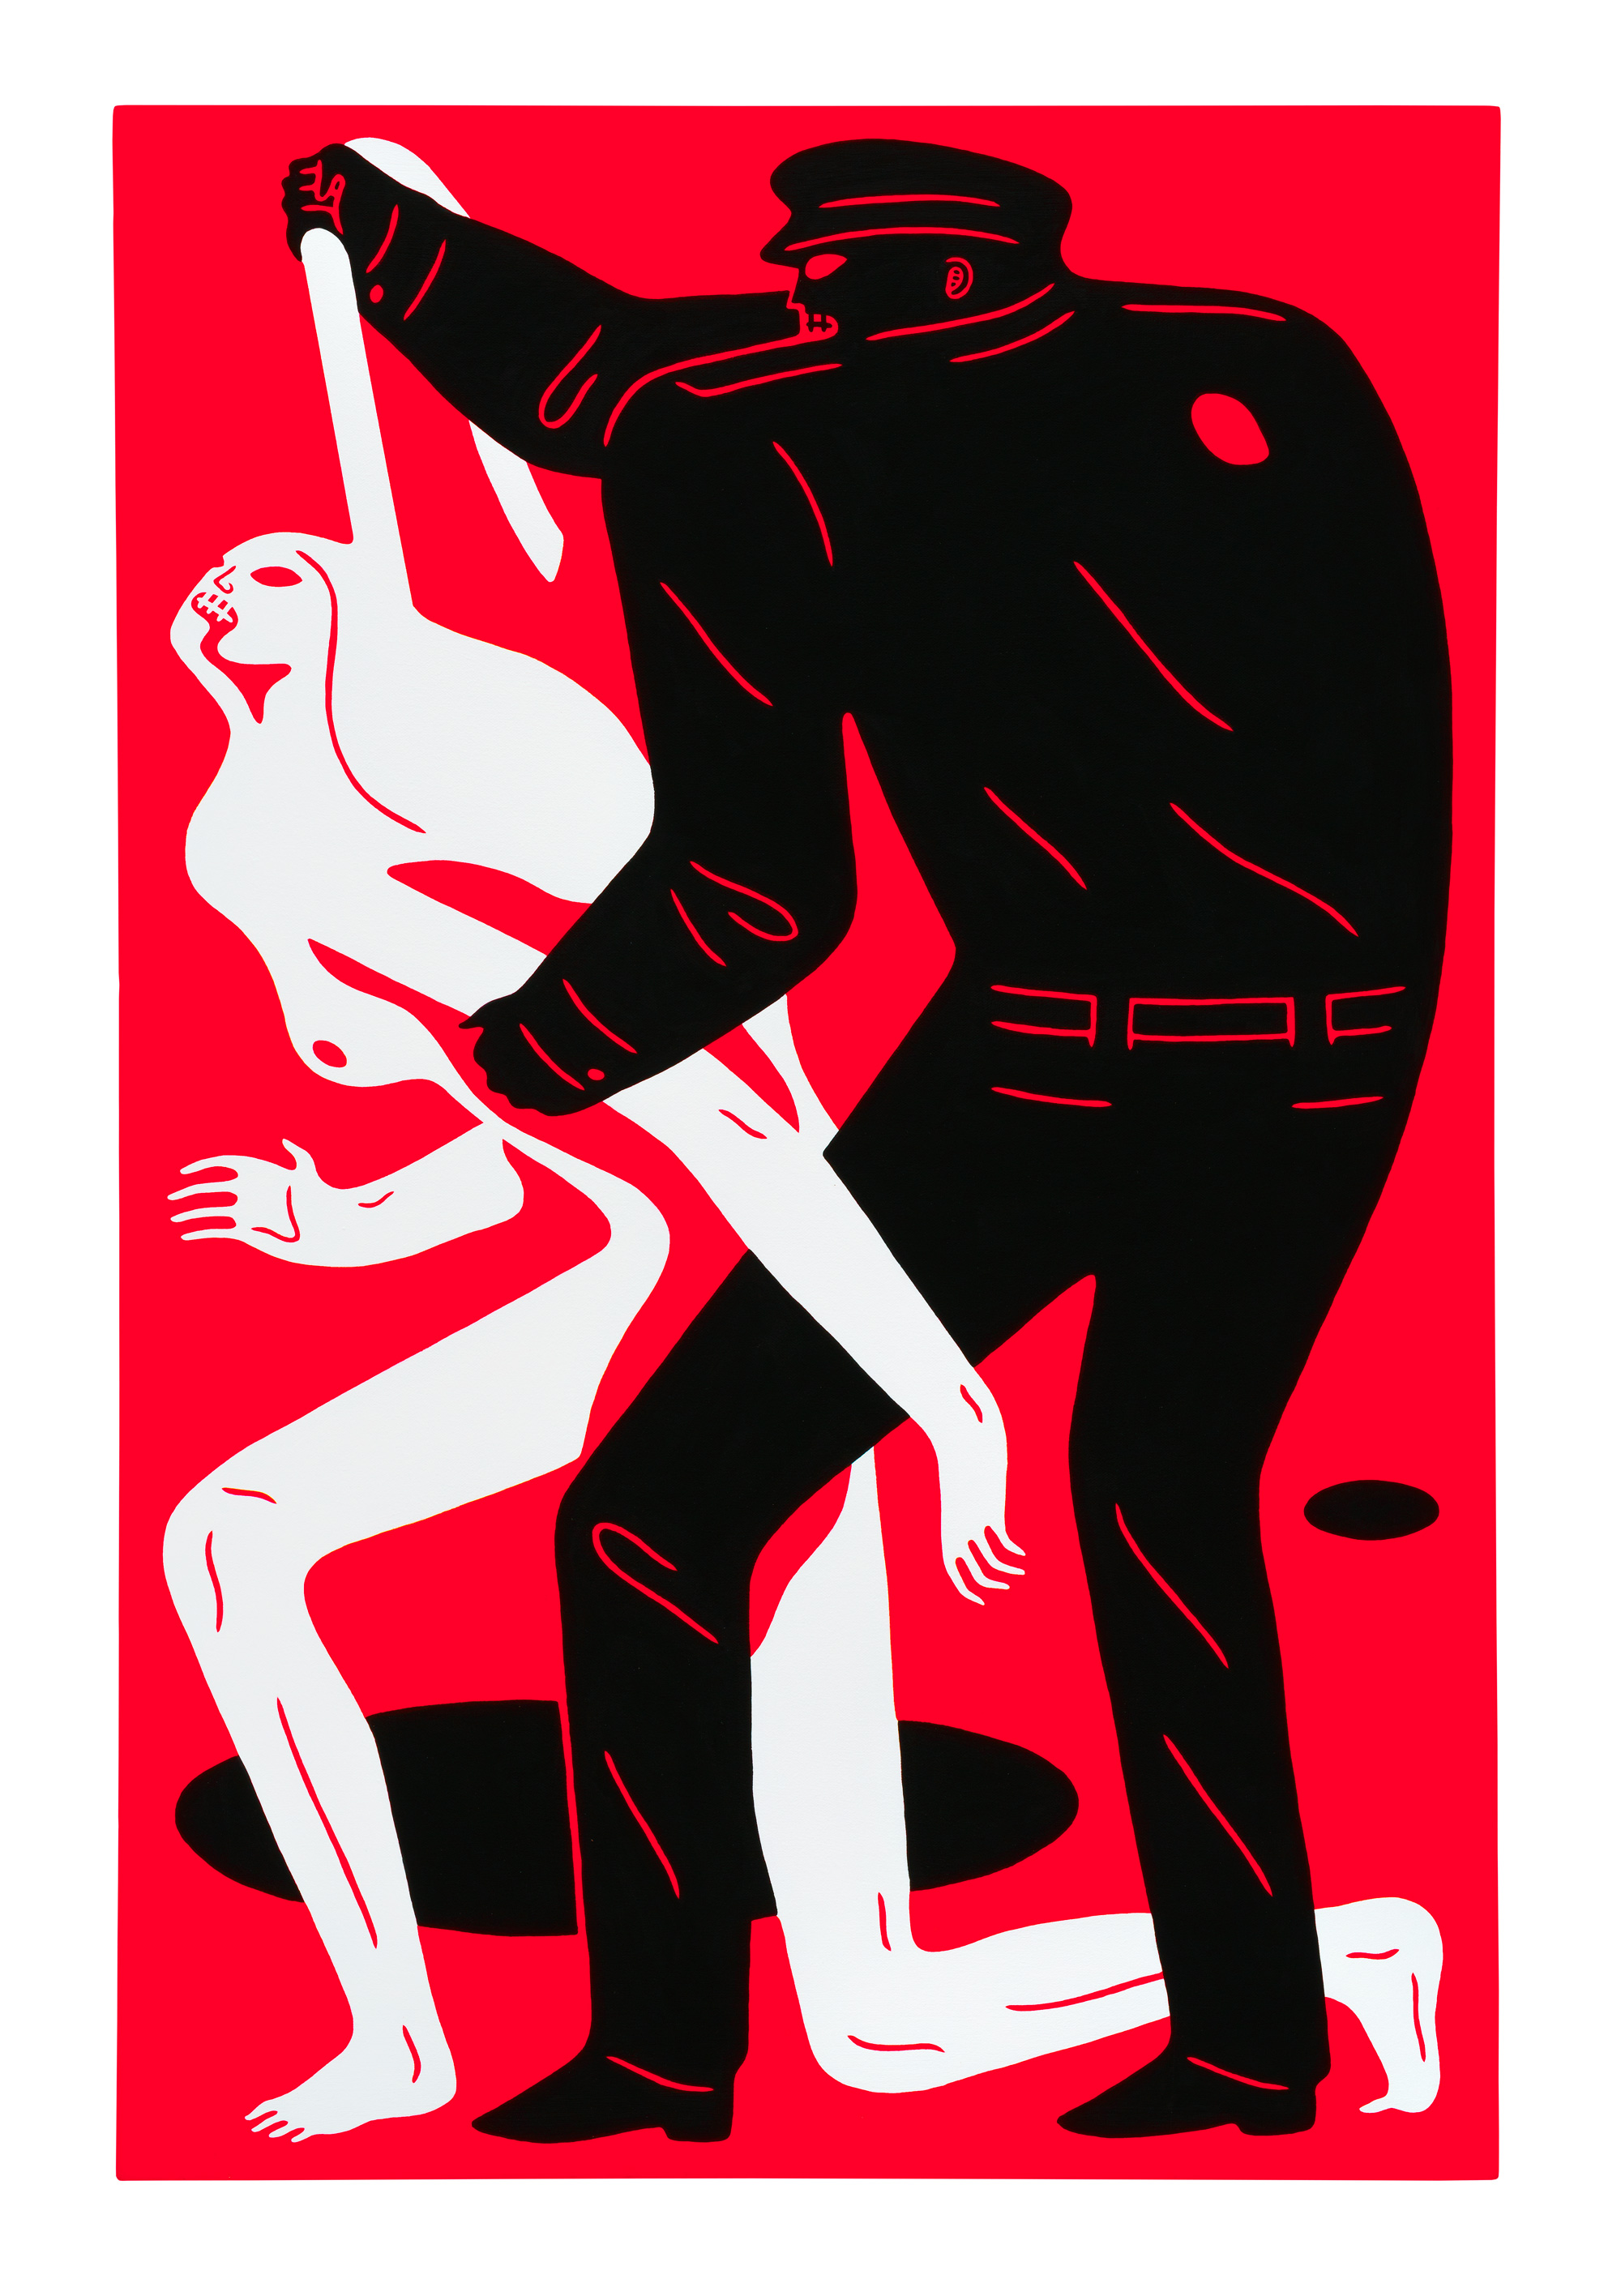 Submission-5-cleon-peterson-amadeus